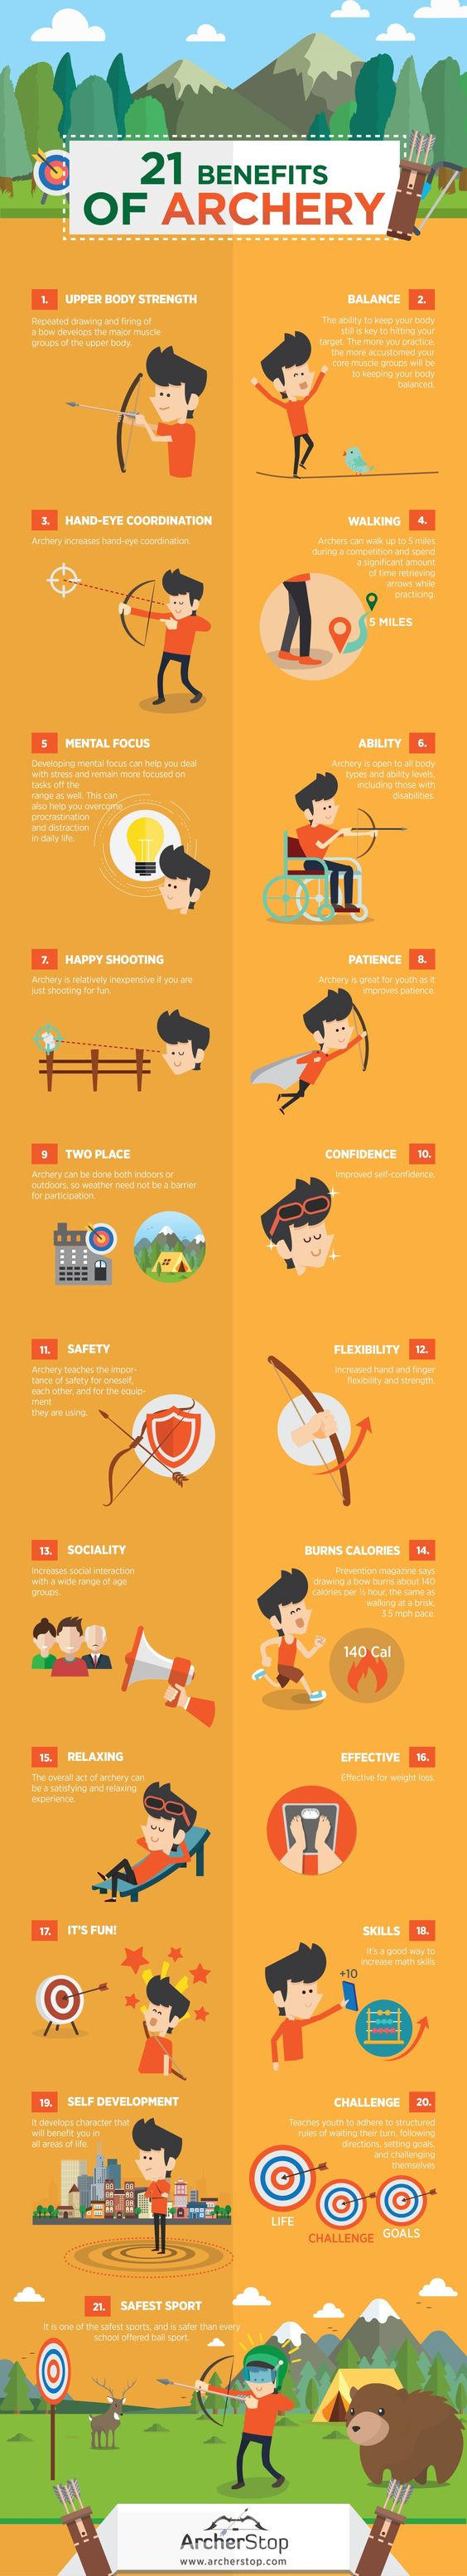 21 Benefits of Archery